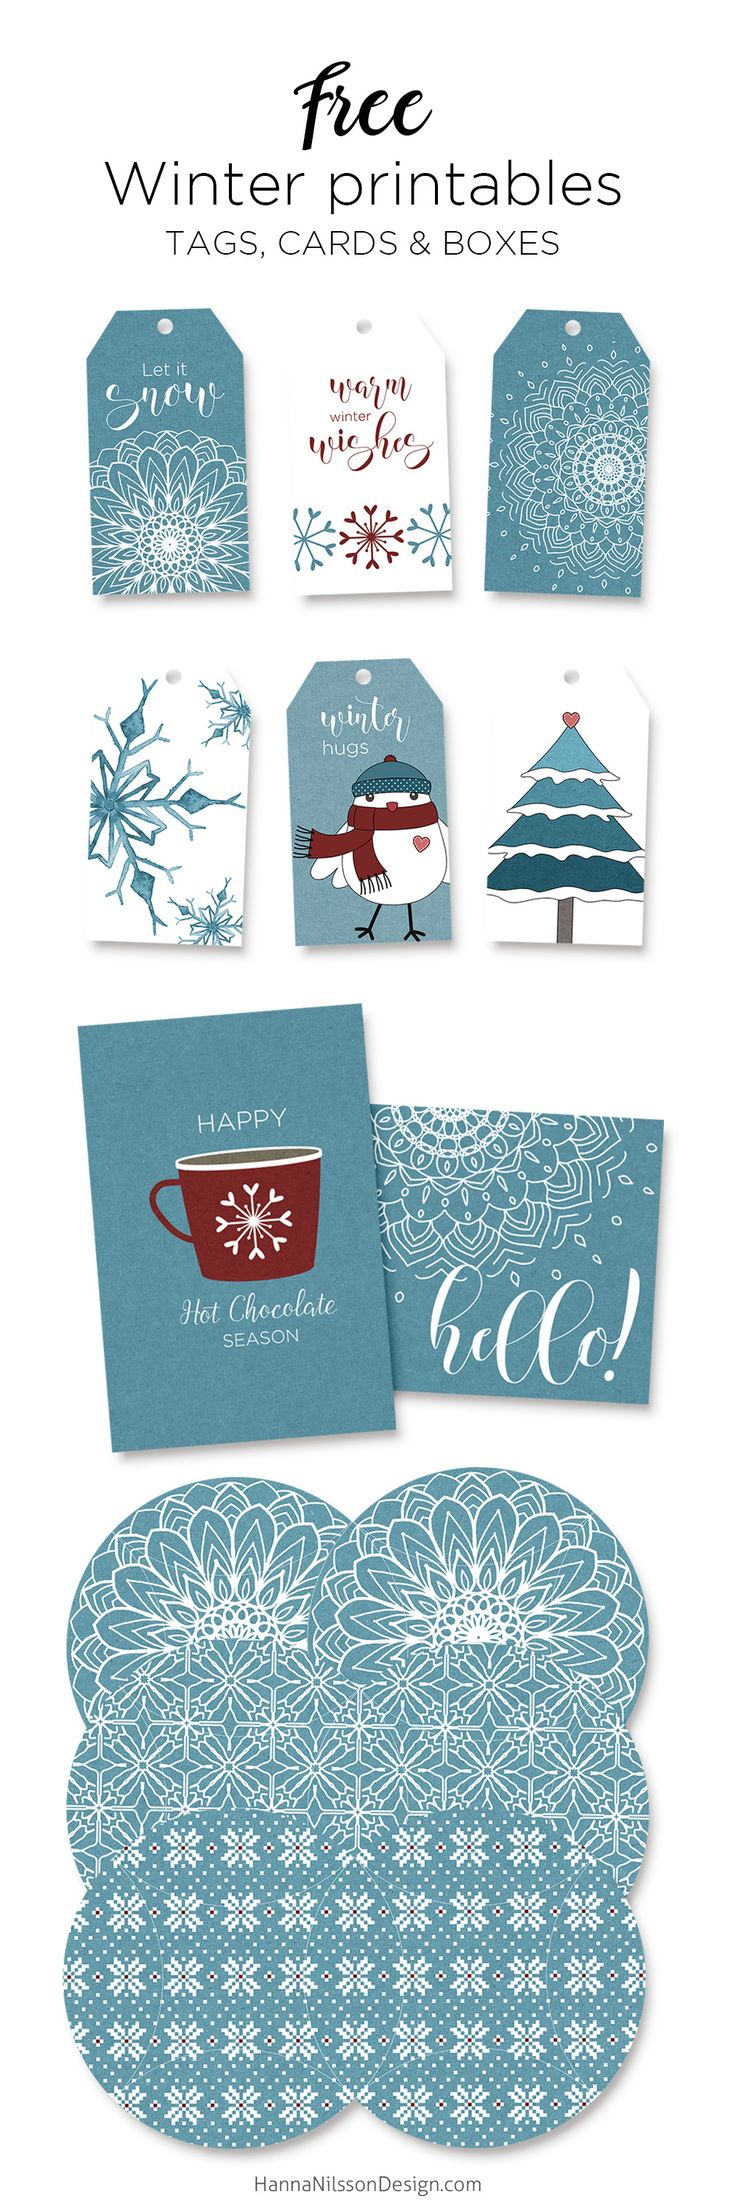 Free winter printables - tags, cards & boxes  --------------------------  paper crafts, handmade gifts. homemade, DIY, paper, sewing, fabric, wood, do it yourself, crafting, kids, teacher gifts, favors. treat boxes, bags, cards, gift card holders, presents, gift wrapping, altered crafts, cardstock, vellum, acetate, greeting card, tags, canvas, winter, Christmas